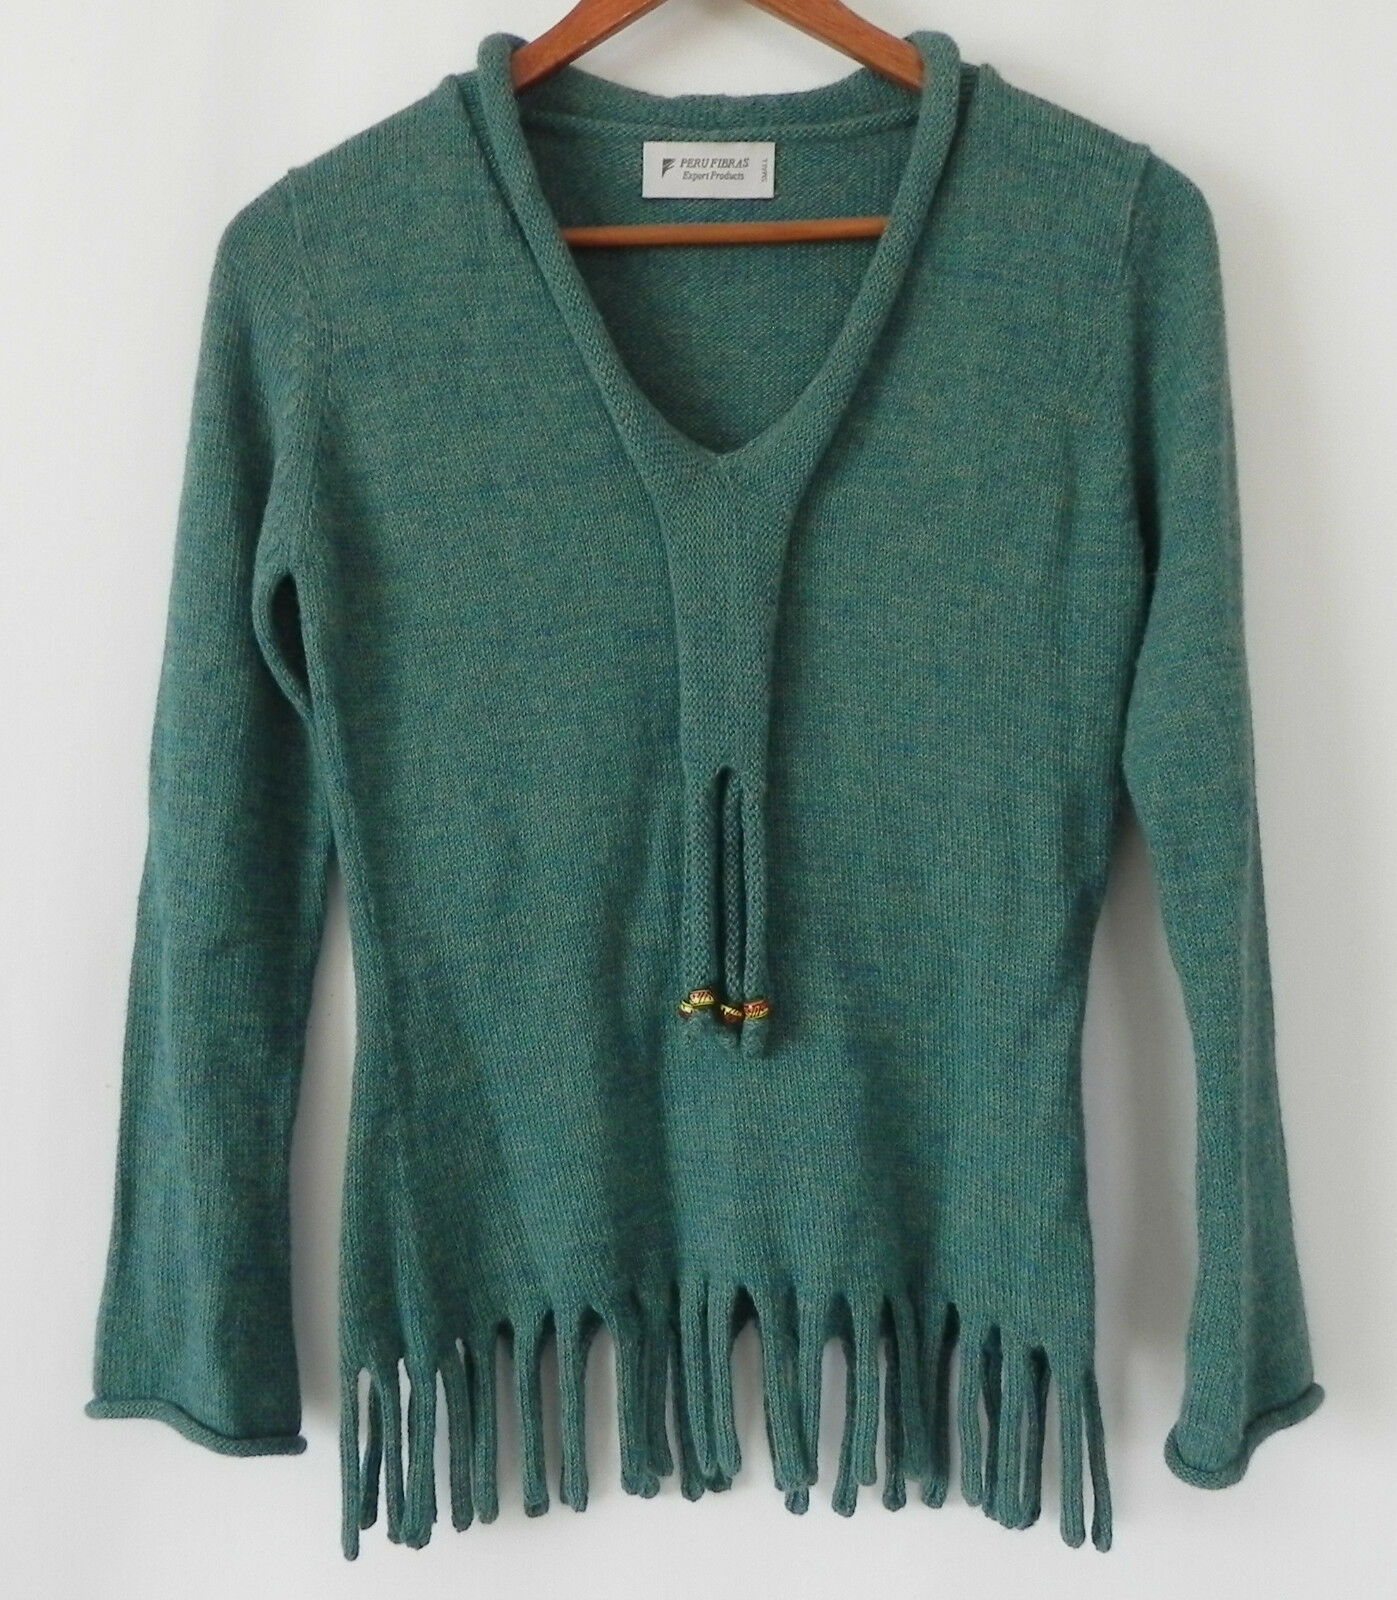 100% Baby Alpaca Peru Fibras Long Sleeve Sea Foam Green Embellishment Size S